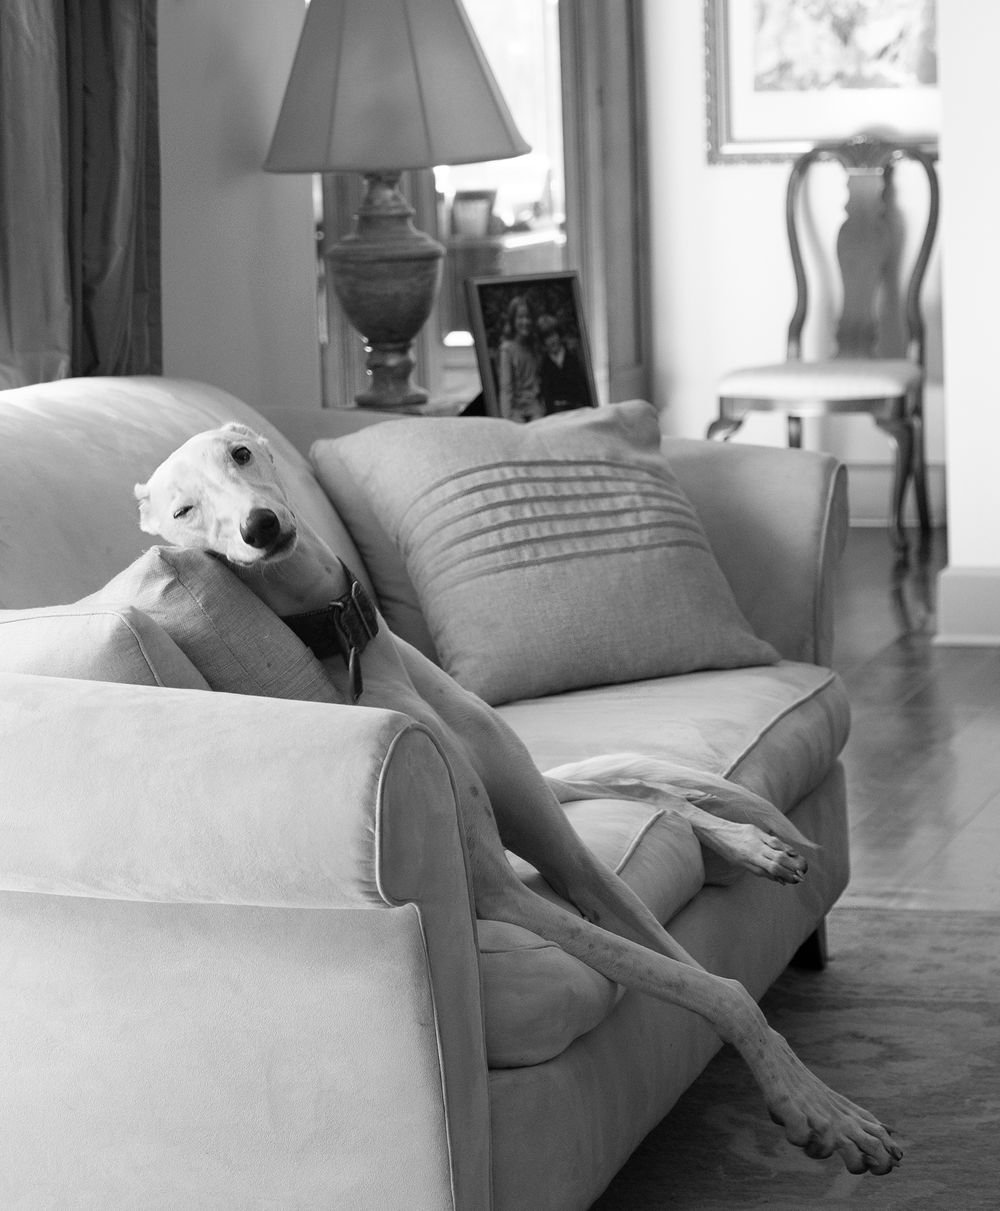 Black and White Fine Art Pet Photography of White Greyhound Sleeping on Sofa with One Eye Open by Leslie Argote